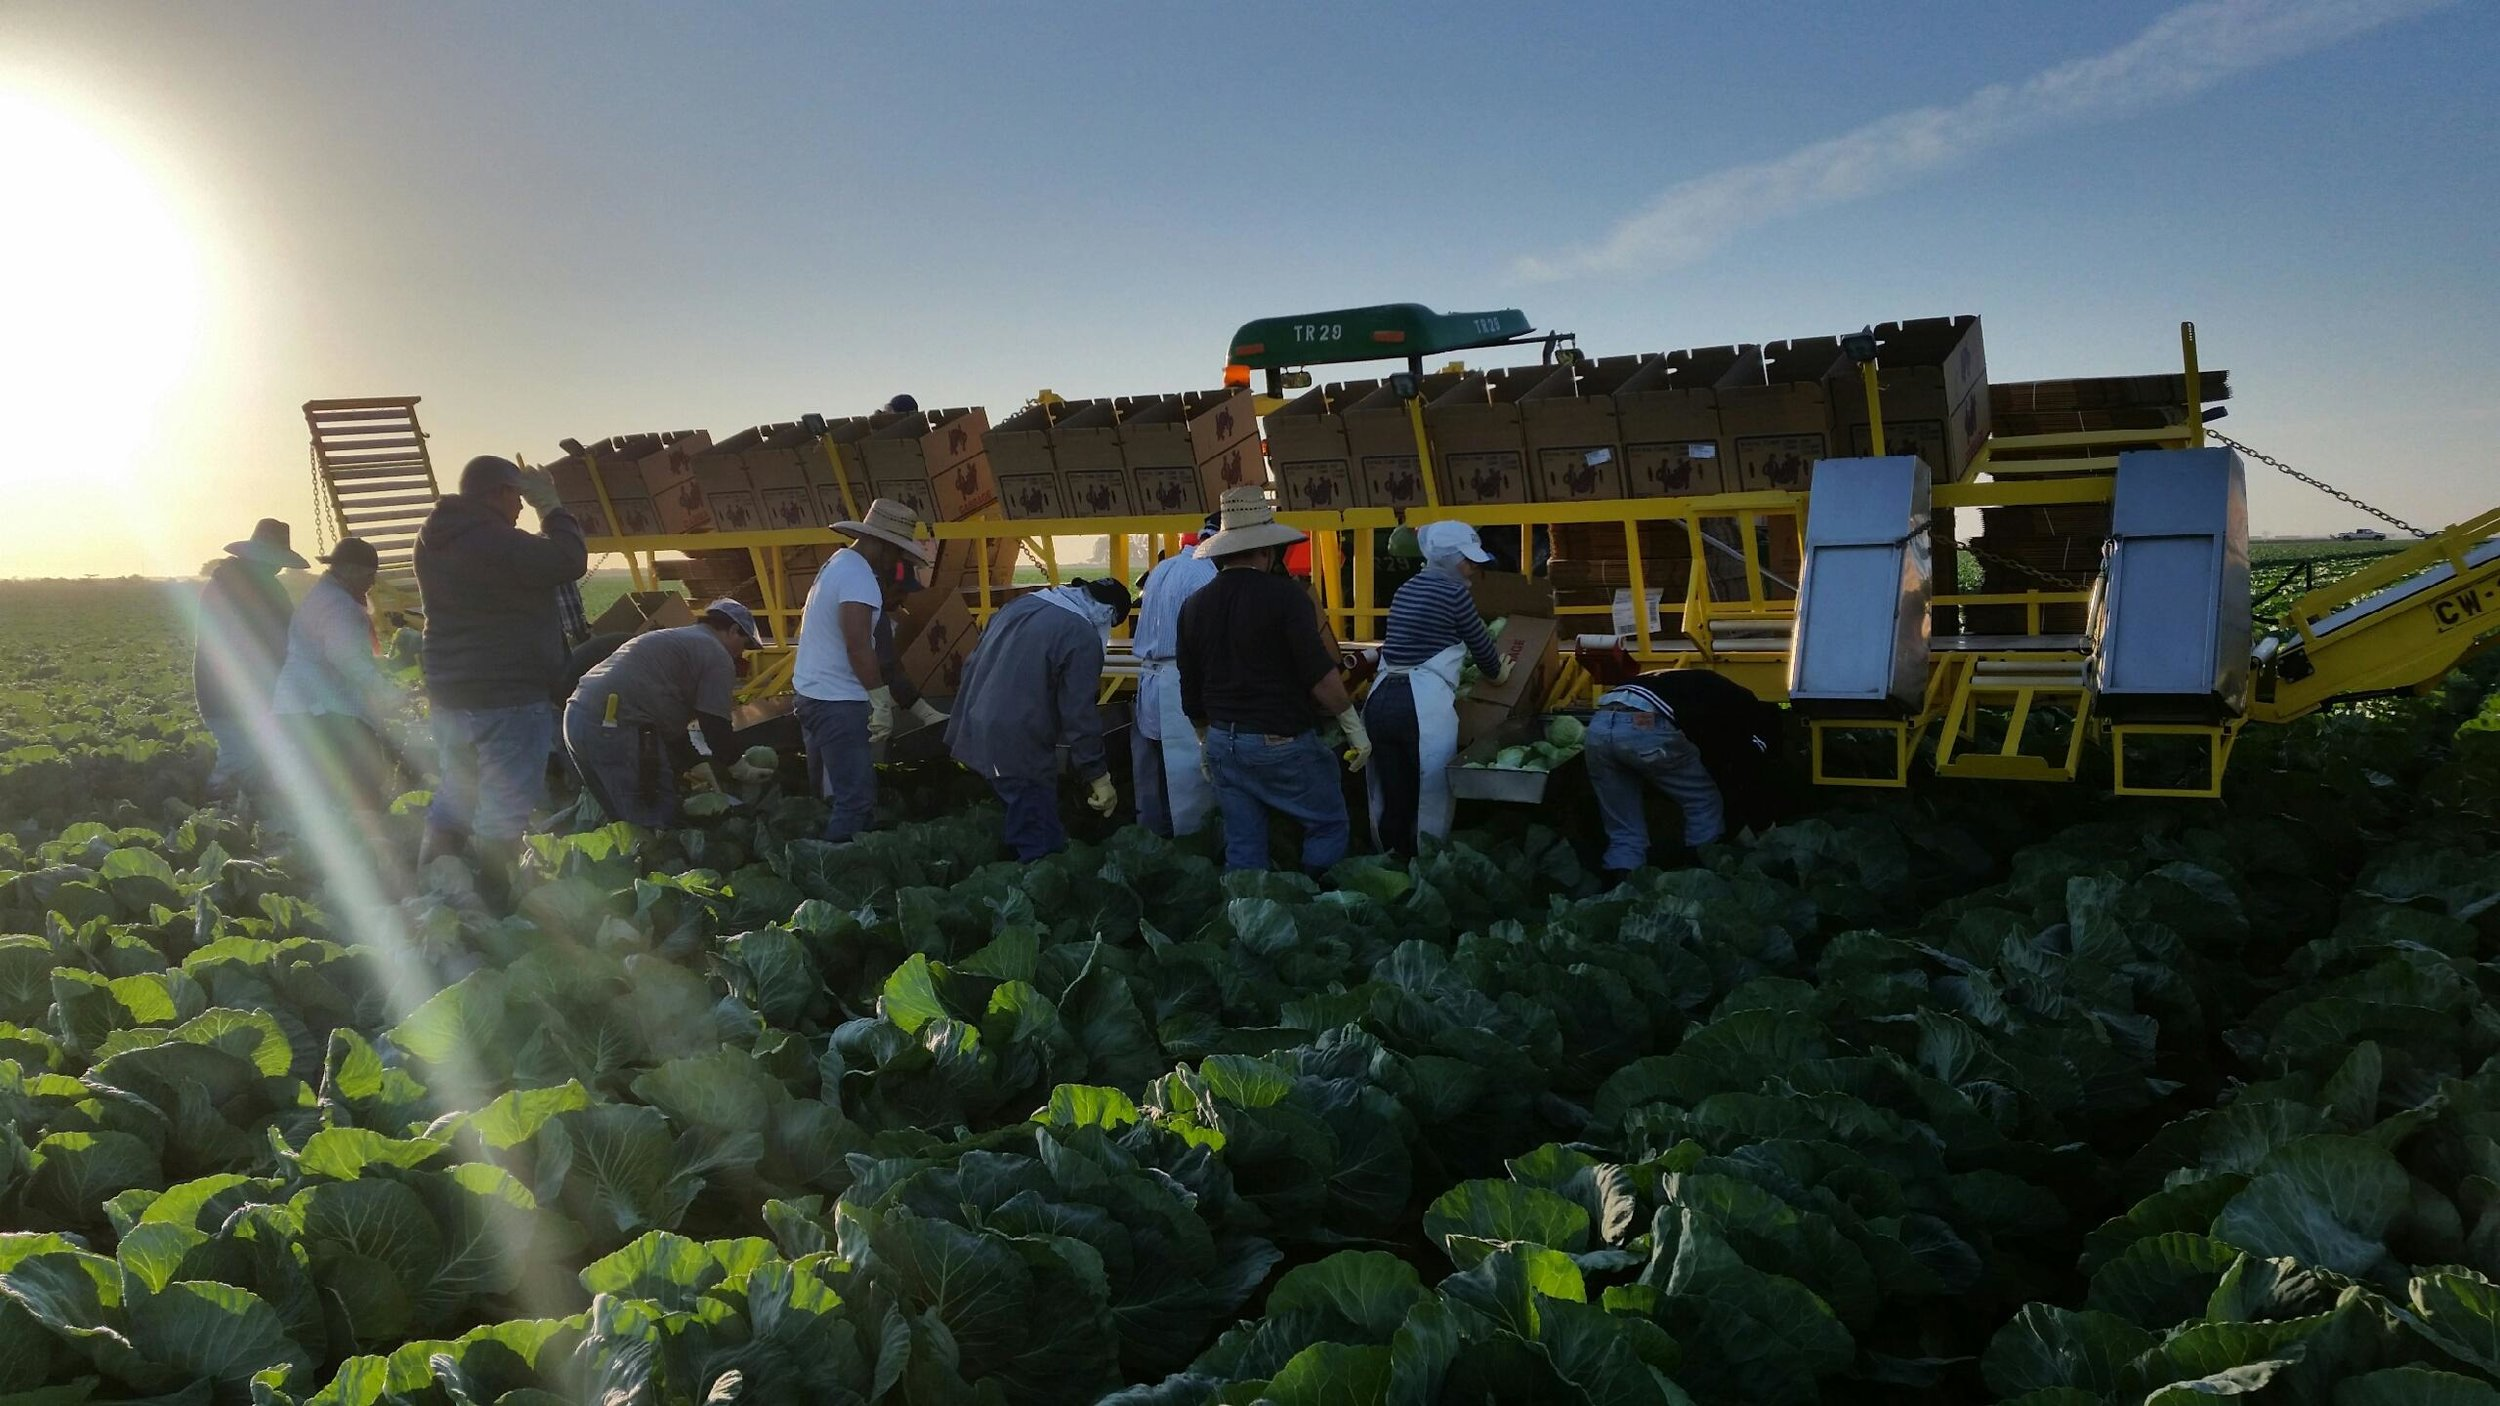 Loading cabbage bright and early